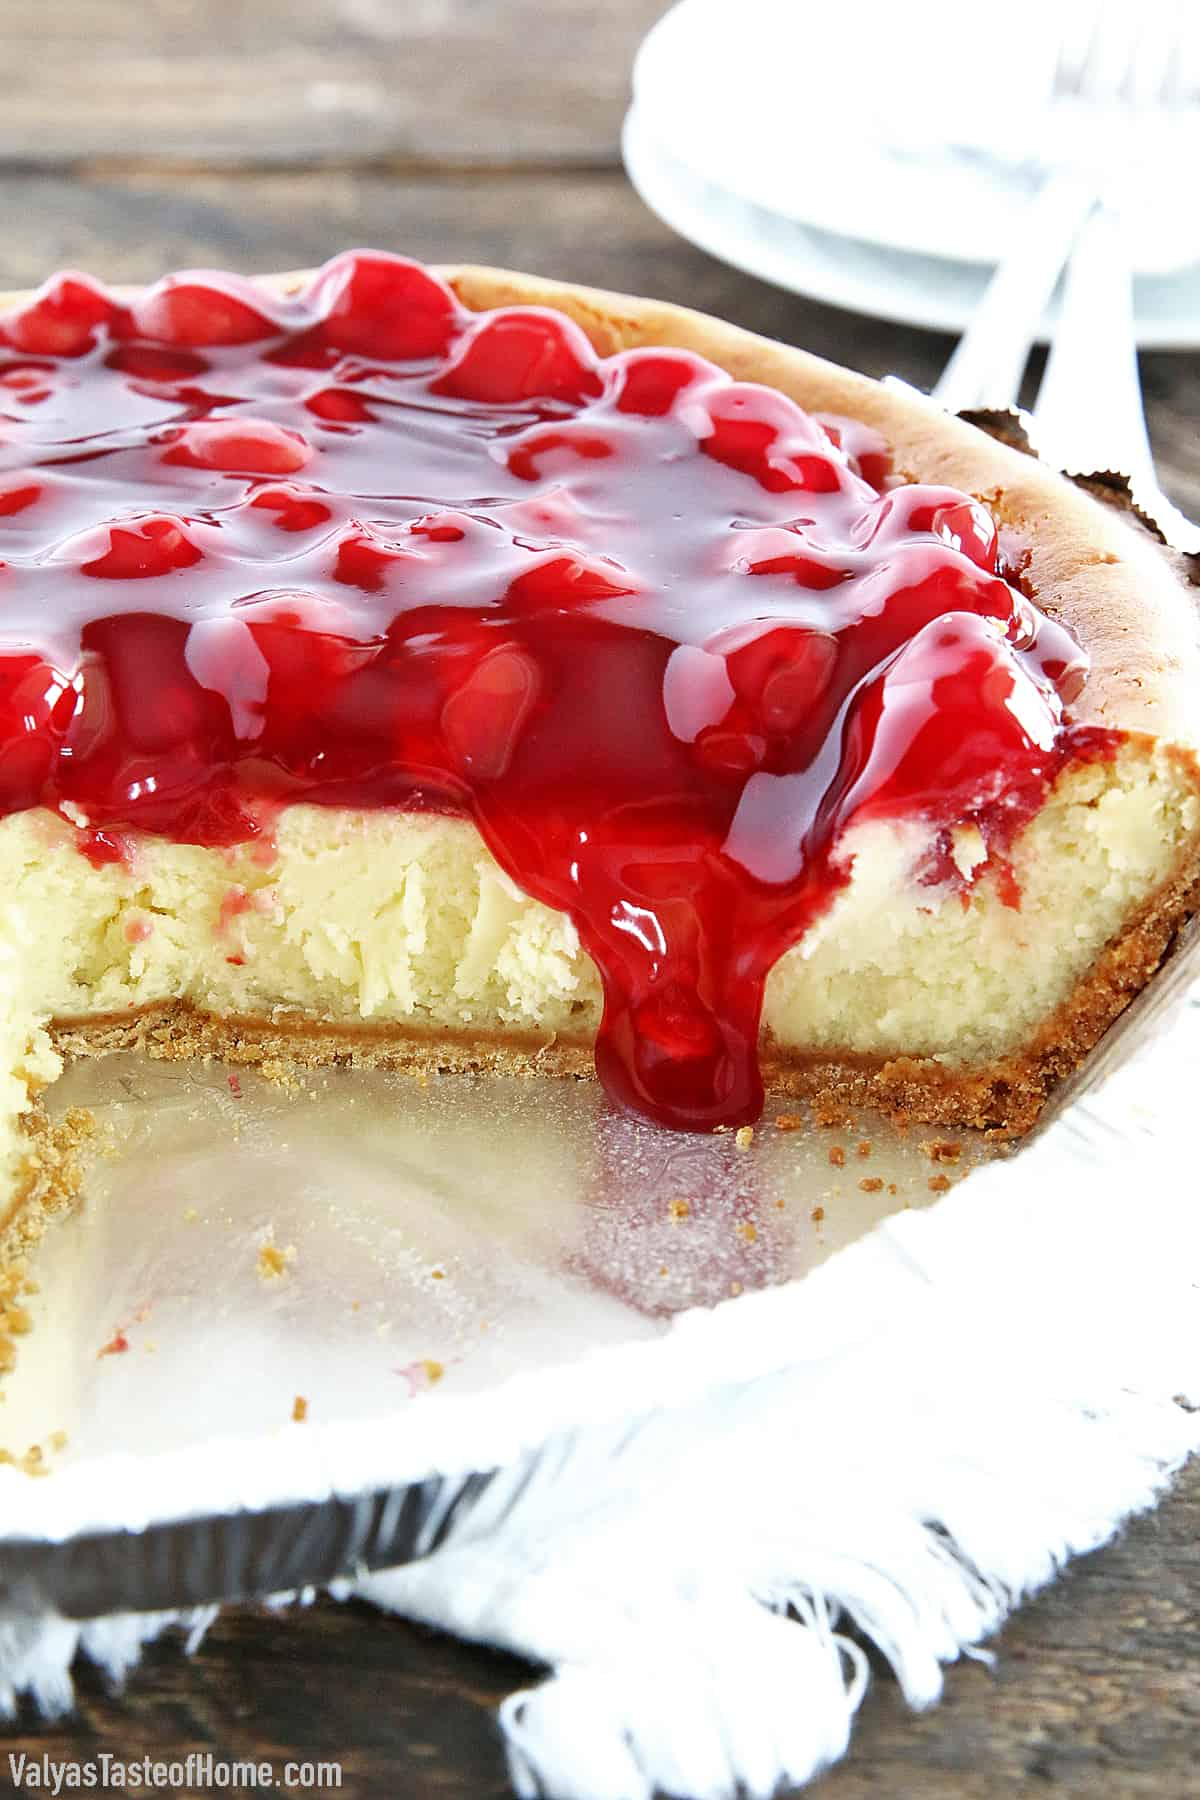 This Cherry Cheesecake is so easy to make and has a delicious original flavor that is hard to beat. It's very smooth and creamy. A bit on the sweet side, but the slightly sour cherry topping perfectly complements that sweetness that is irresistible.